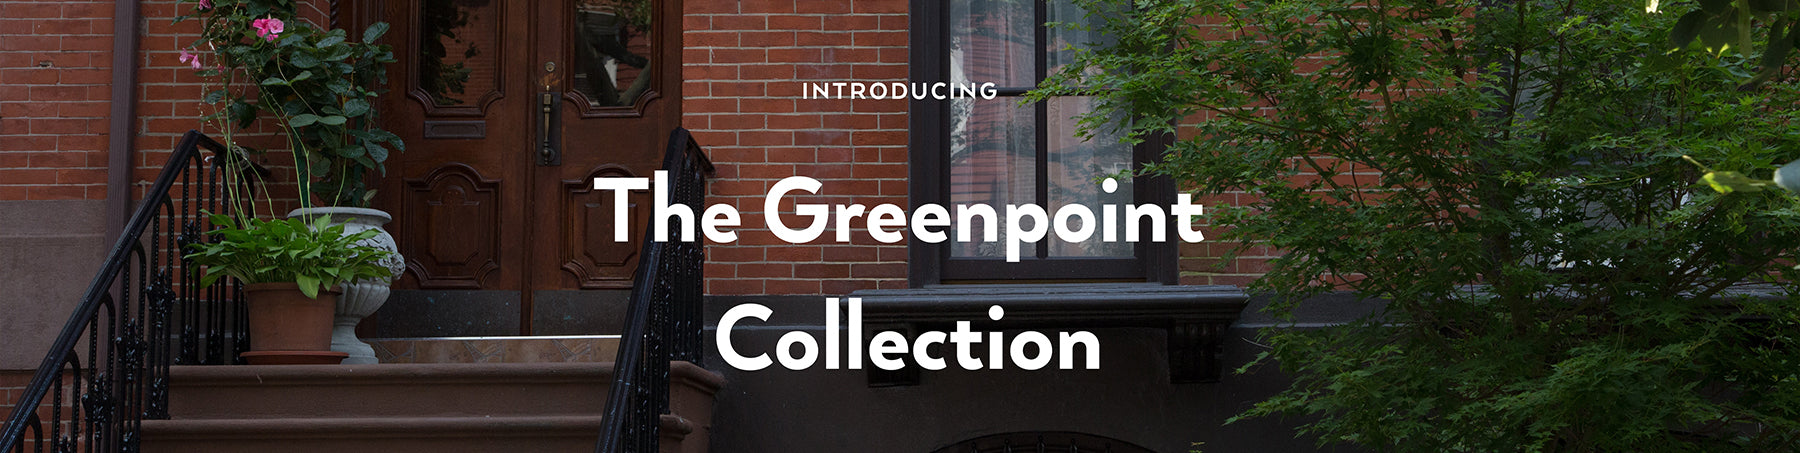 The Greenpoint Collection